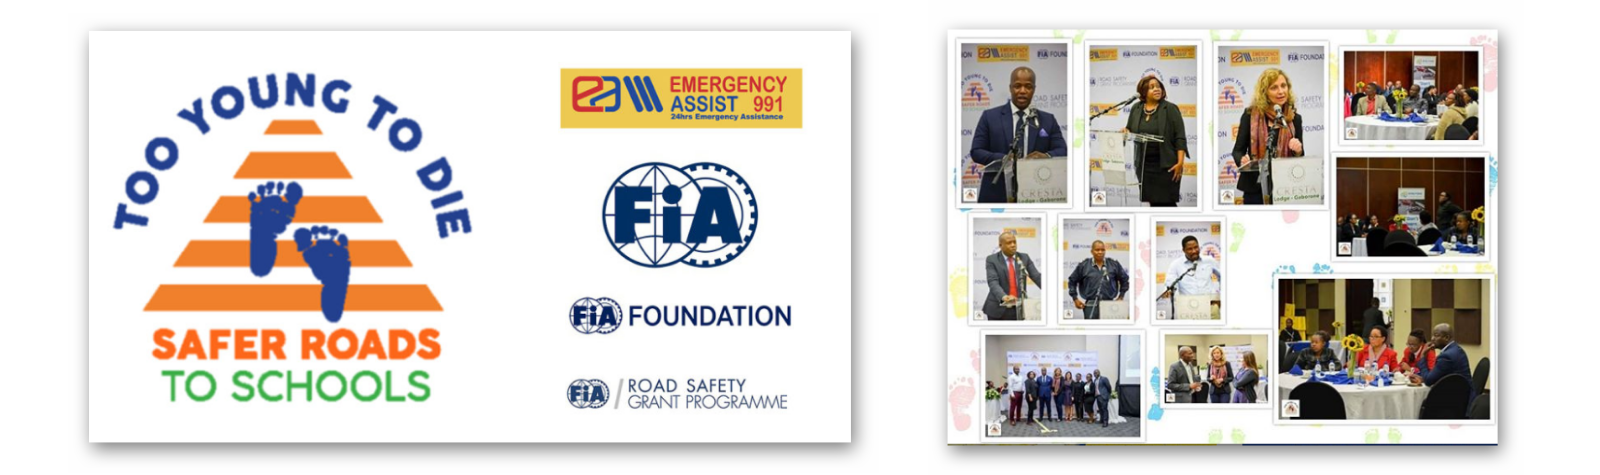 Launch of the EA991 Road Safety Project : Safer roads to schools – too young to die!